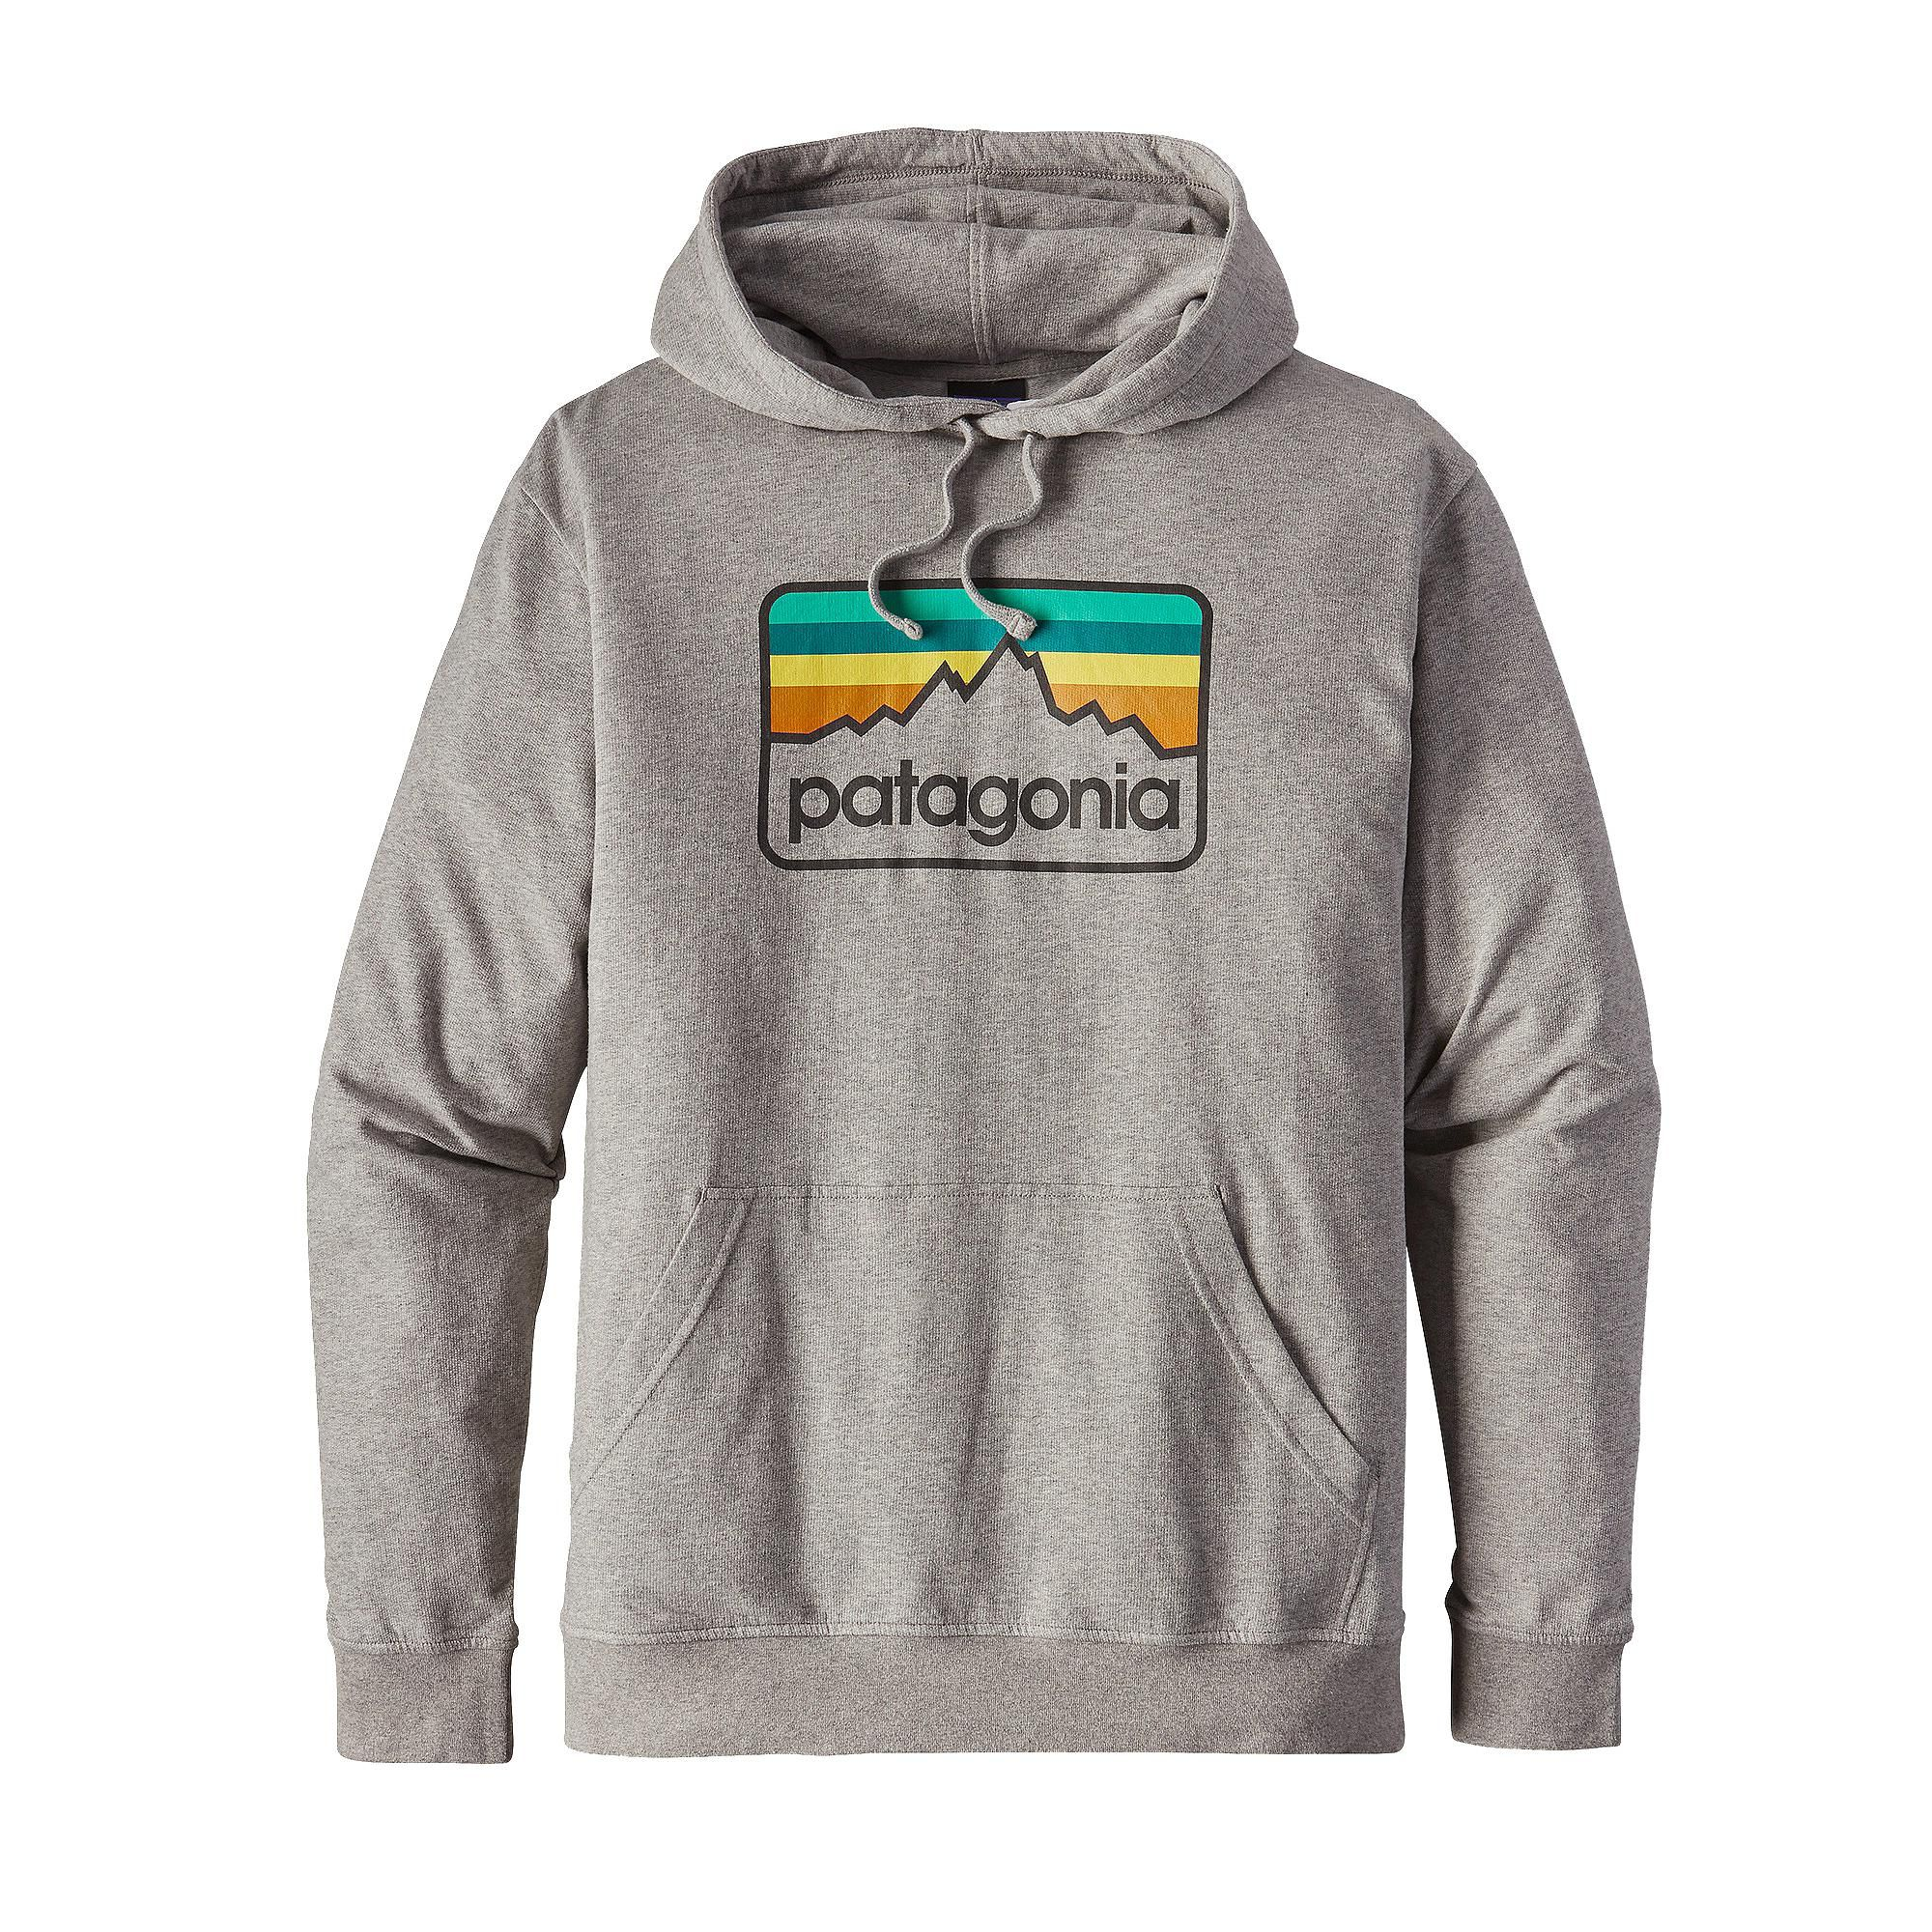 Scout your line wearing the Patagonia Men's Line Logo Badge